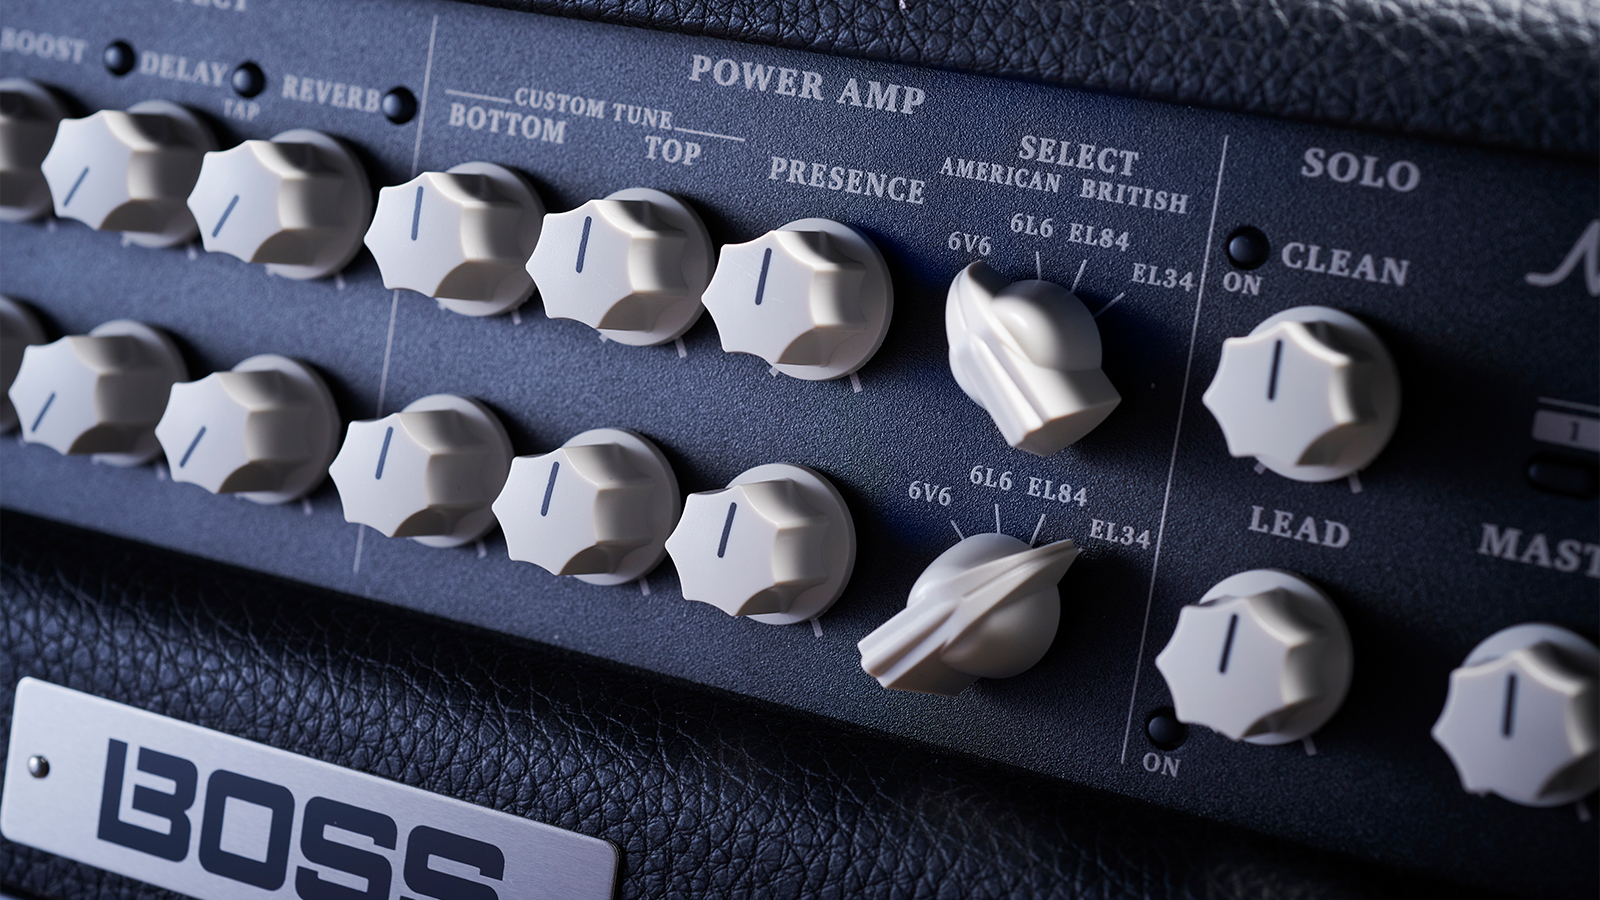 Four Amps in One